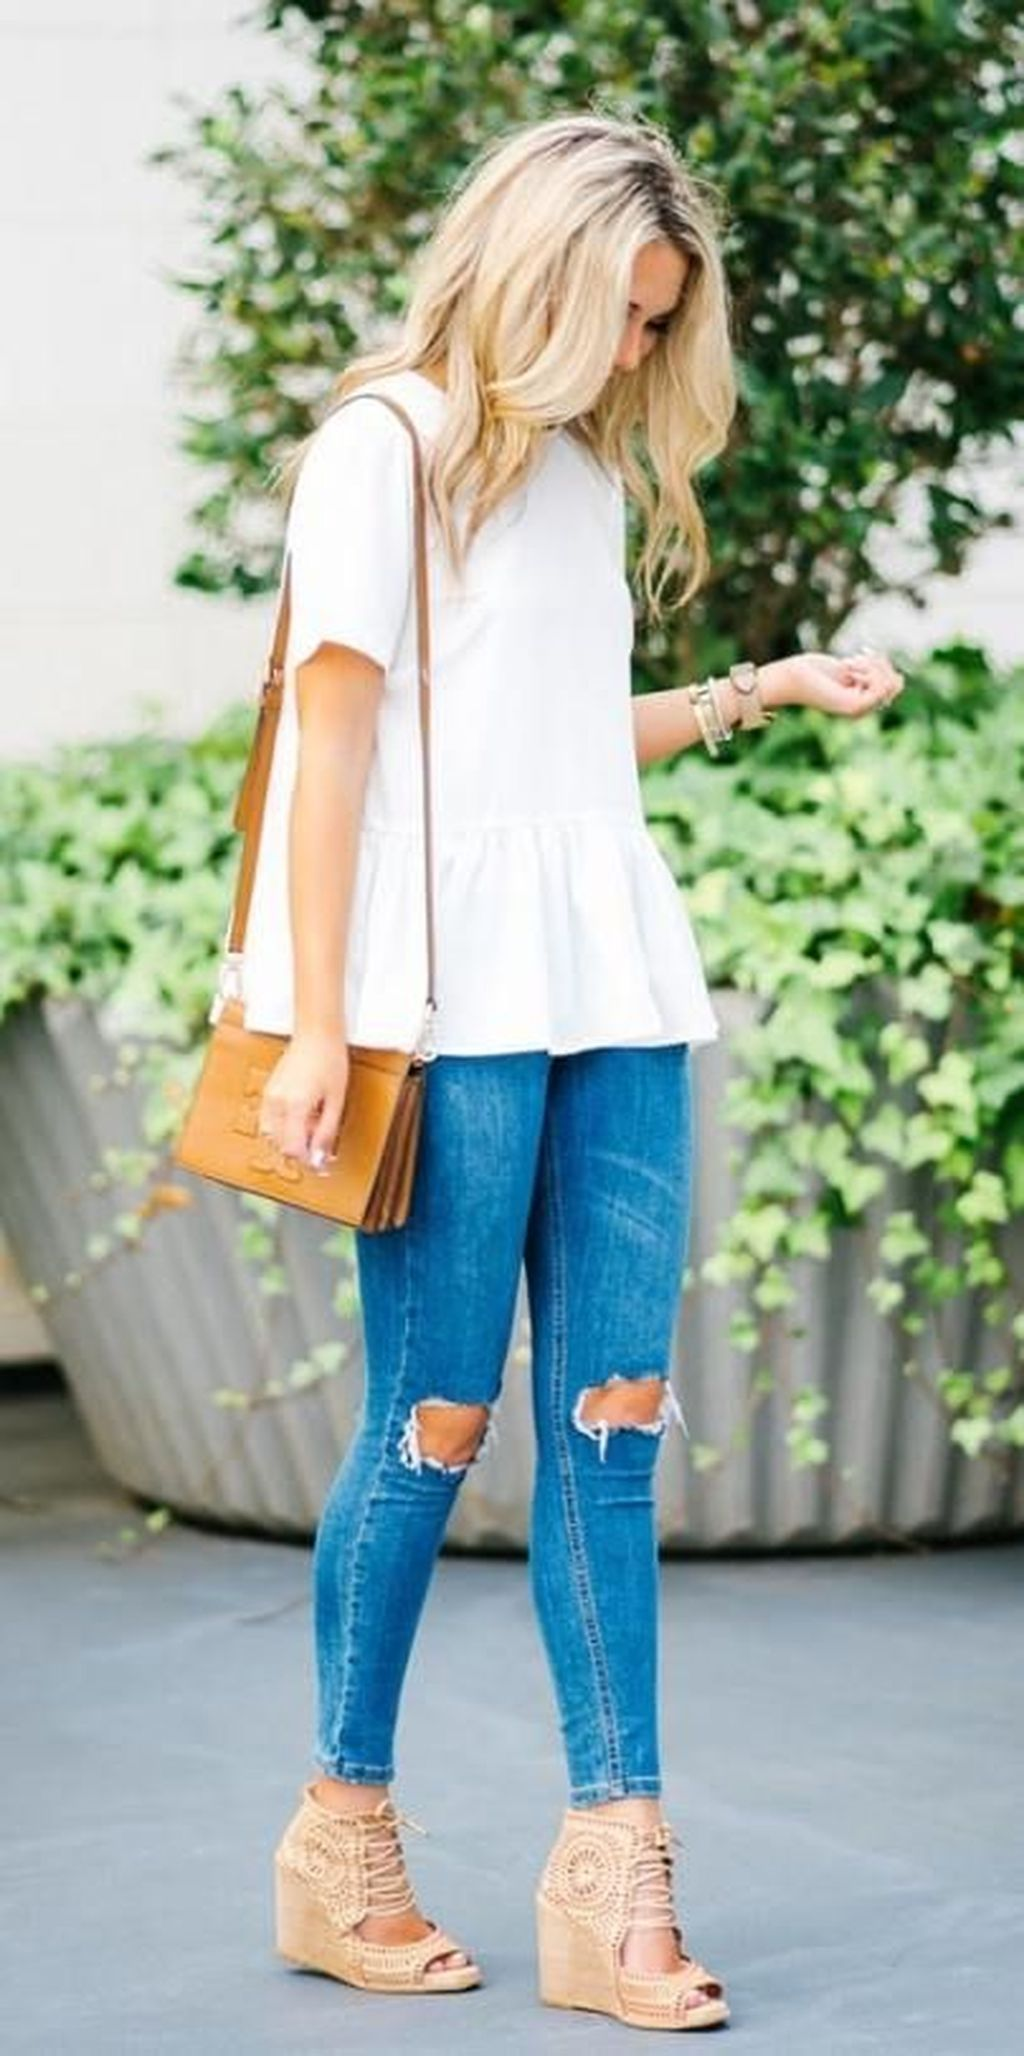 30+ Latest Girly Outfit Ideas For Summer